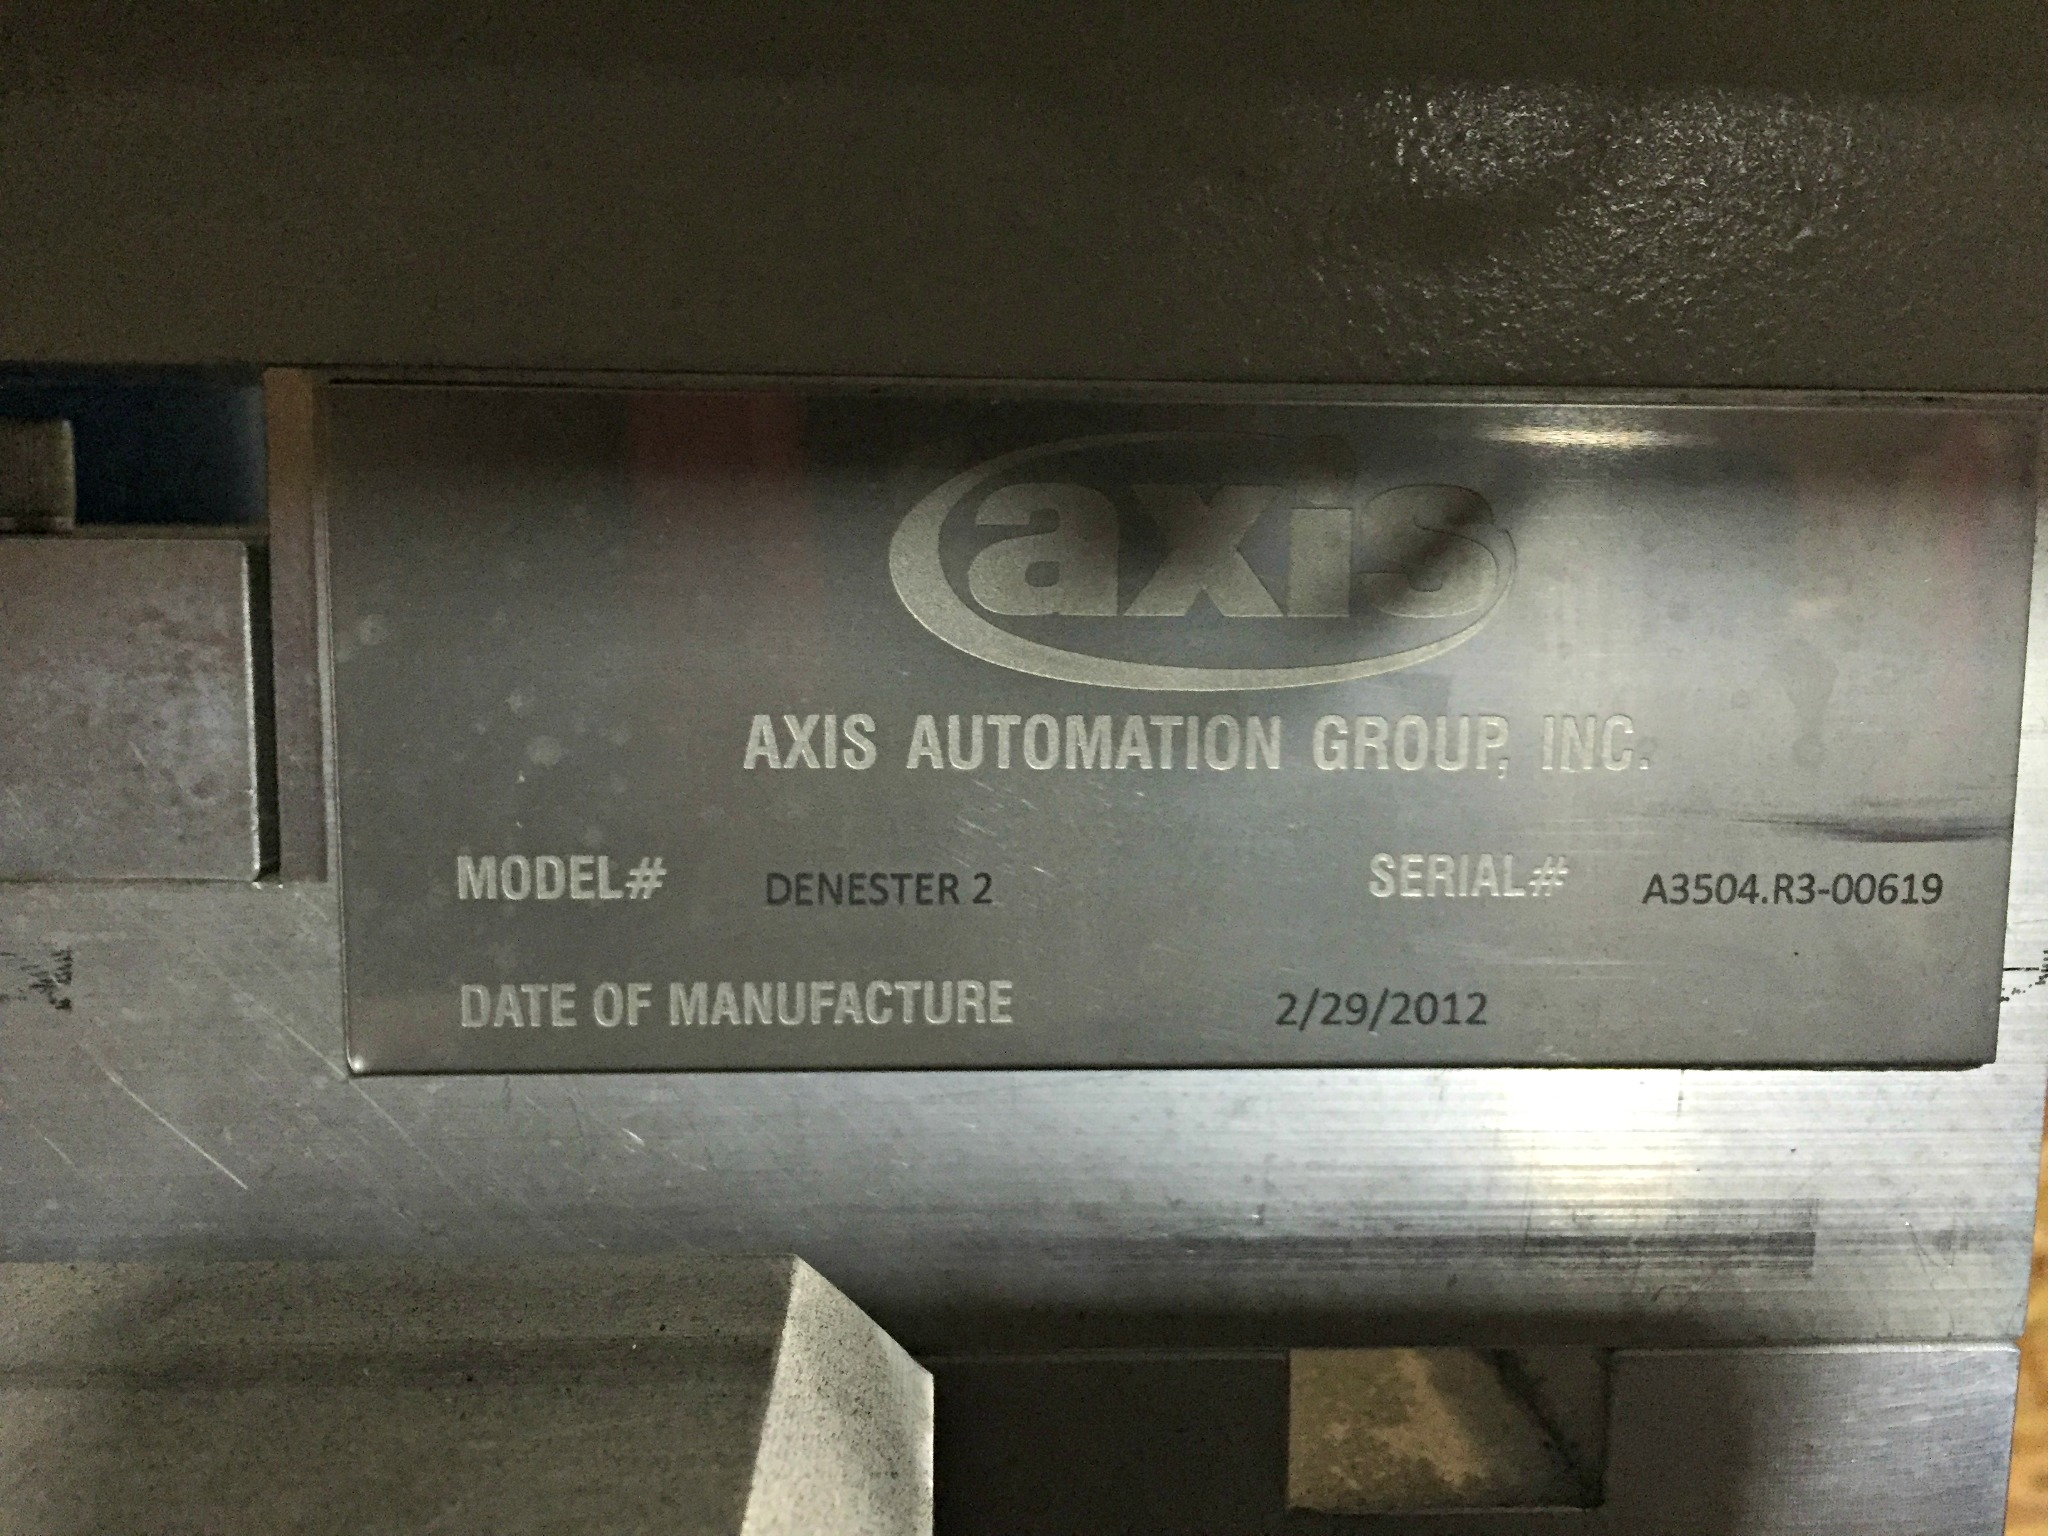 Lot 53 - Axis Automation Group Denester 2 , Cone Denester with a 3'X8' Donner Coneveyor,SN:A3504.R3-00619,